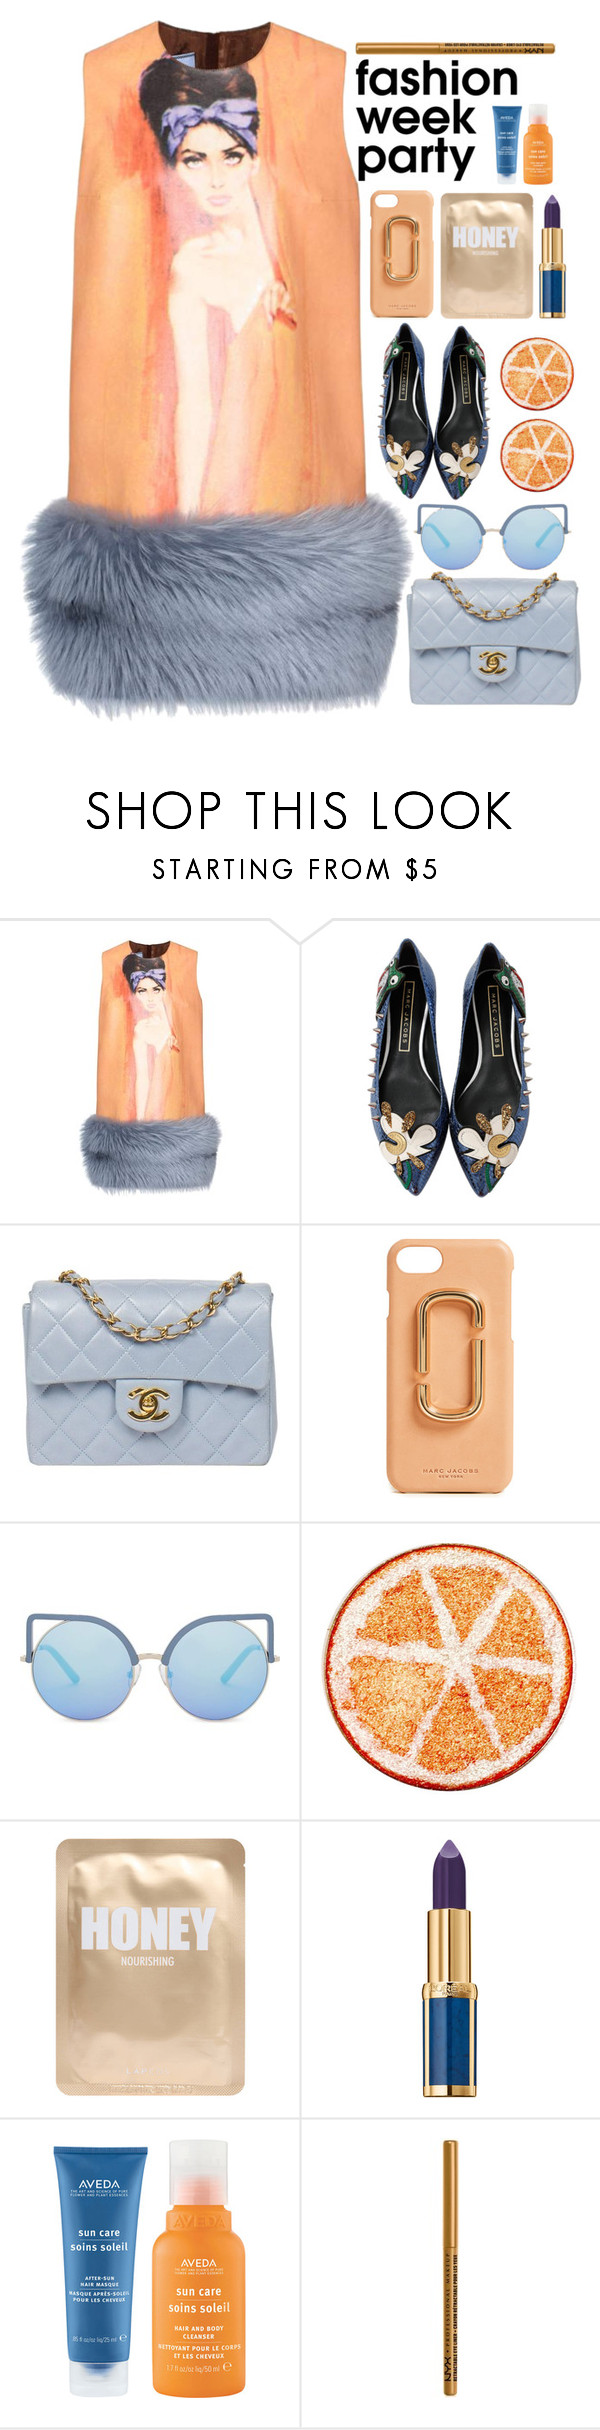 """/.FWparty2./"" by semashamrr ❤ liked on Polyvore featuring Prada, Marc Jacobs, Chanel, Matthew Williamson, Lapcos, Balmain, Aveda and NYX"